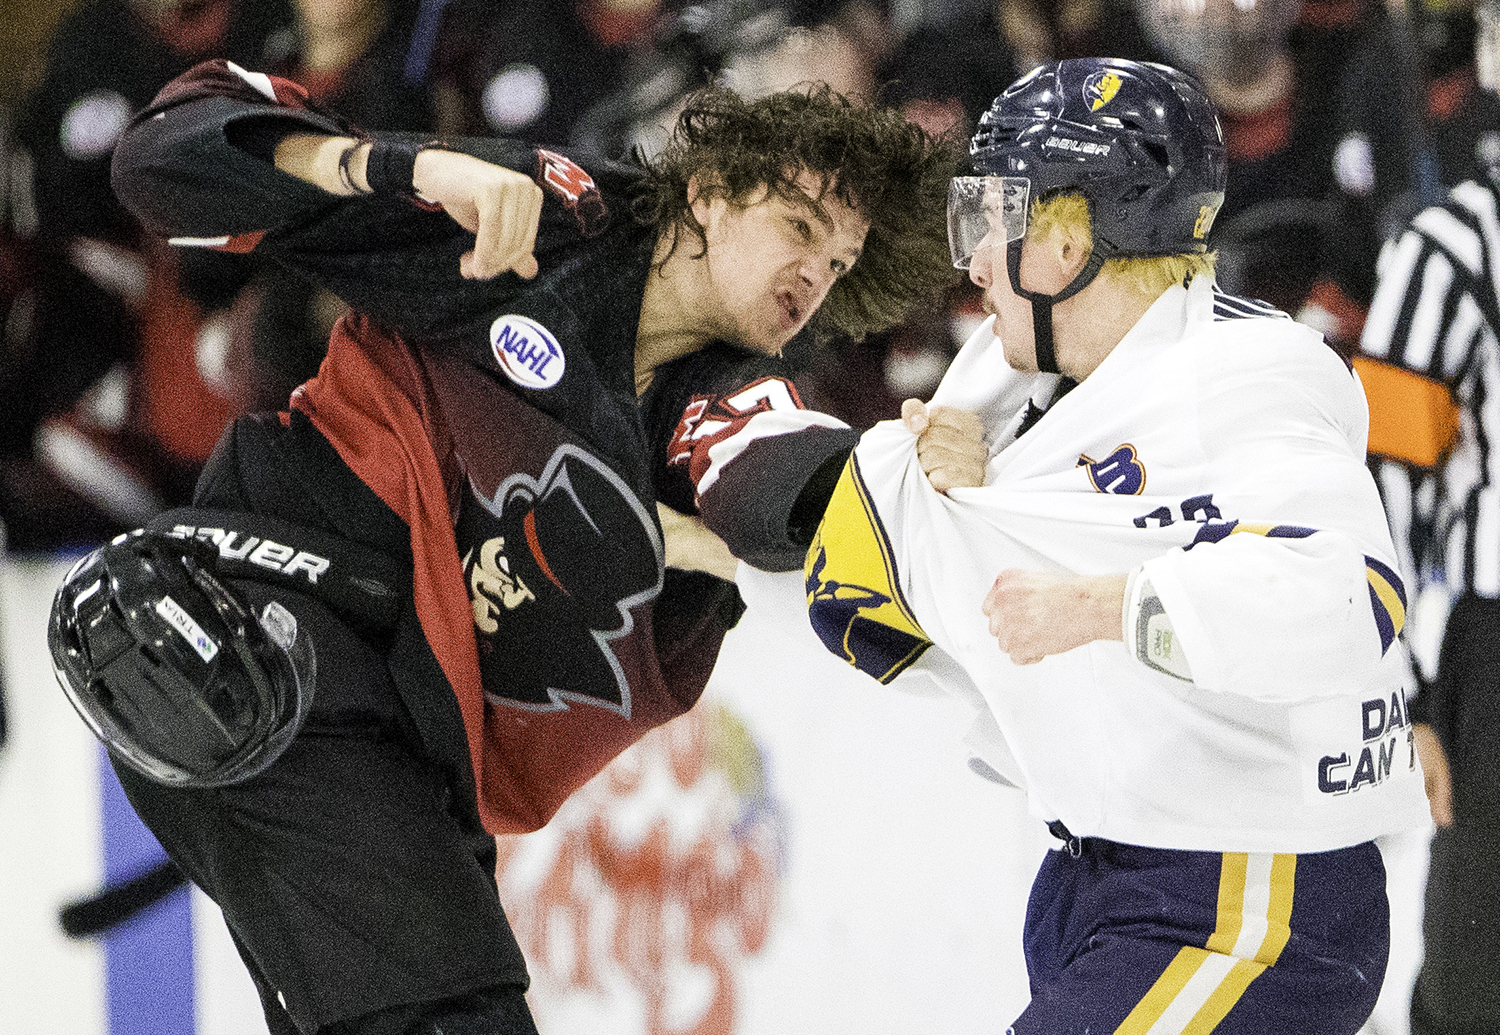 Minnesota's TJ Sagissor and Springfield's Brandon Puricelli exchange blows in the first period during the North American Hockey League playoff game at the Nelson Center Friday, April 19, 2019. [Ted Schurter/The State Journal-Register]